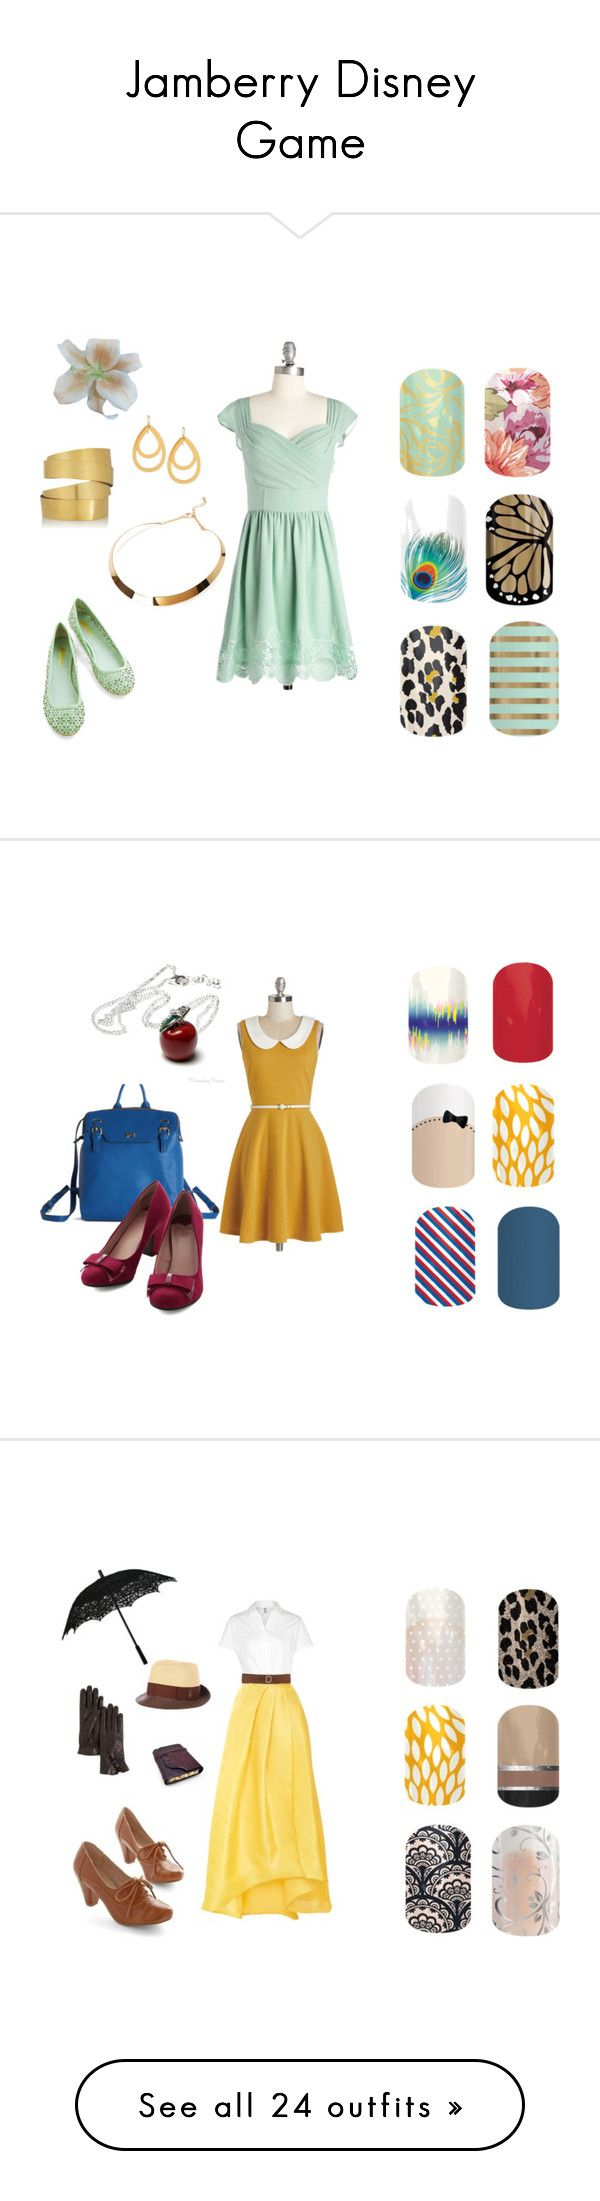 """Jamberry Disney Game"" by beccaboo605 ❤ liked on Polyvore featuring Hervé Van Der Straeten, Forever 21, Stephanie Kantis, Nica, Once Upon a Time, plus size dresses, American Apparel, Monique Lhuillier, BKE and Chelsea Crew"